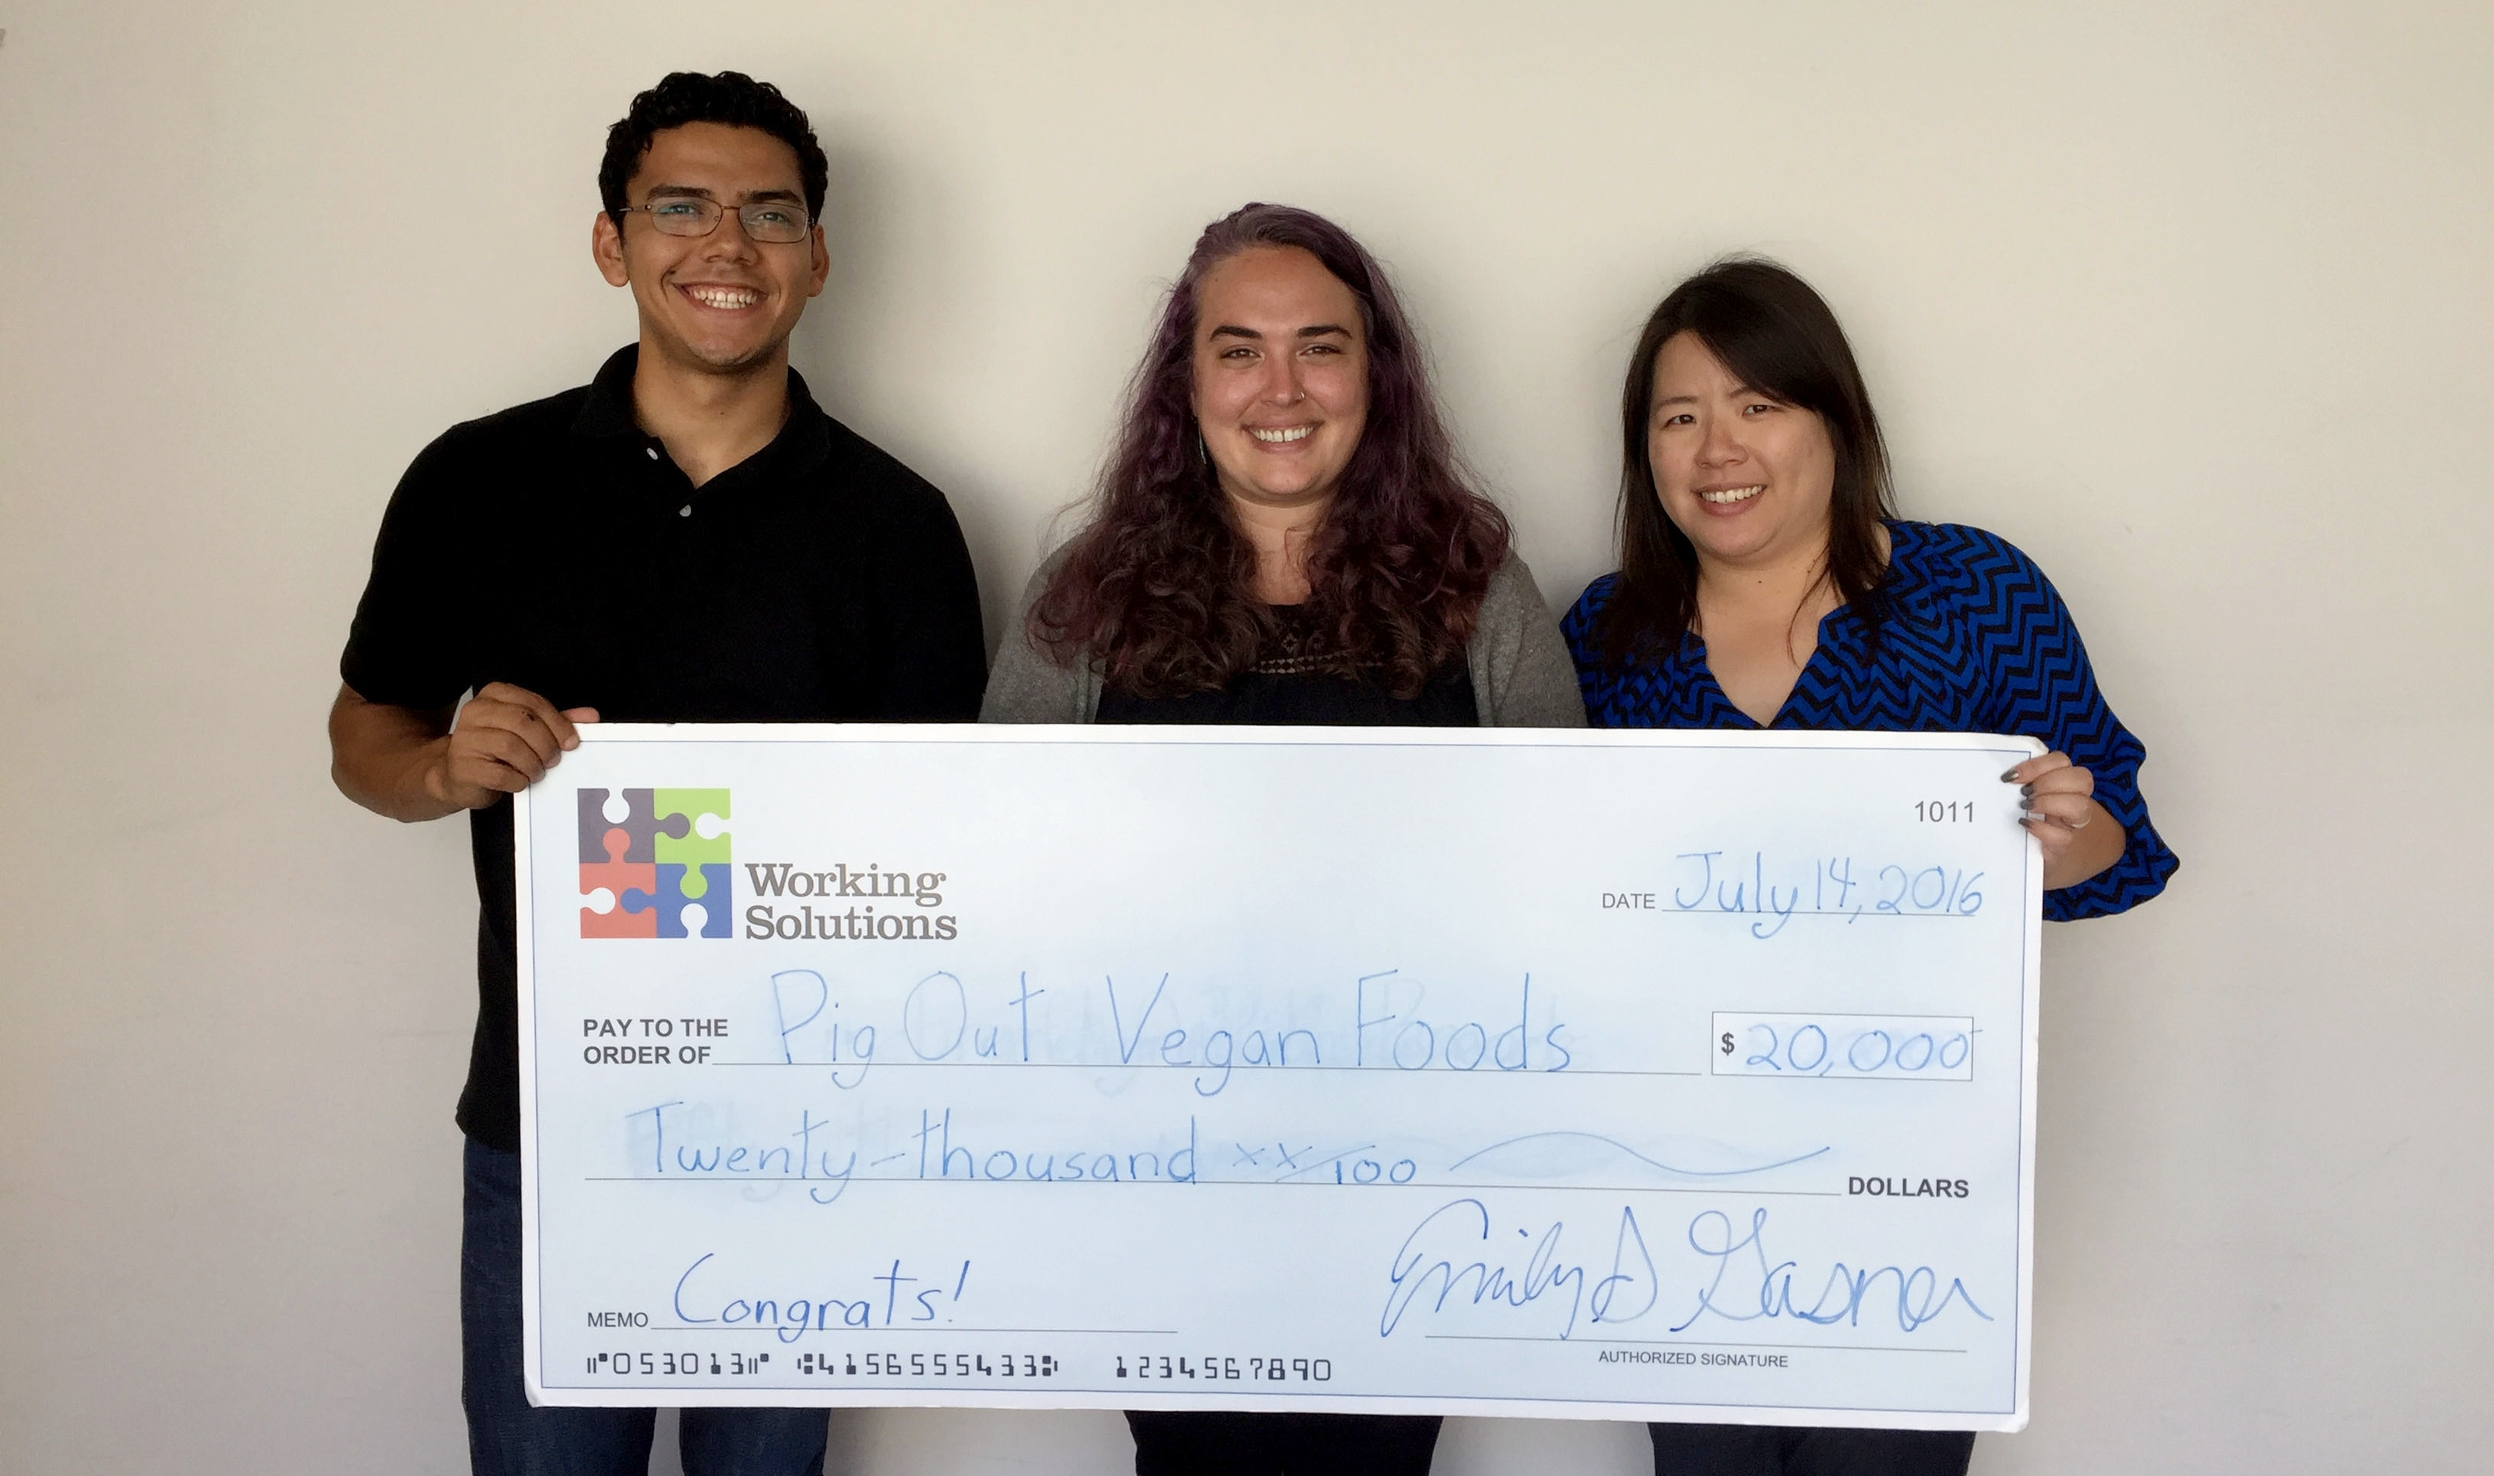 Samantha, owner,receiving her funds from Roberto Hernandez, Business Lending Officer, and Agnes Cheung, Director of Business Lending